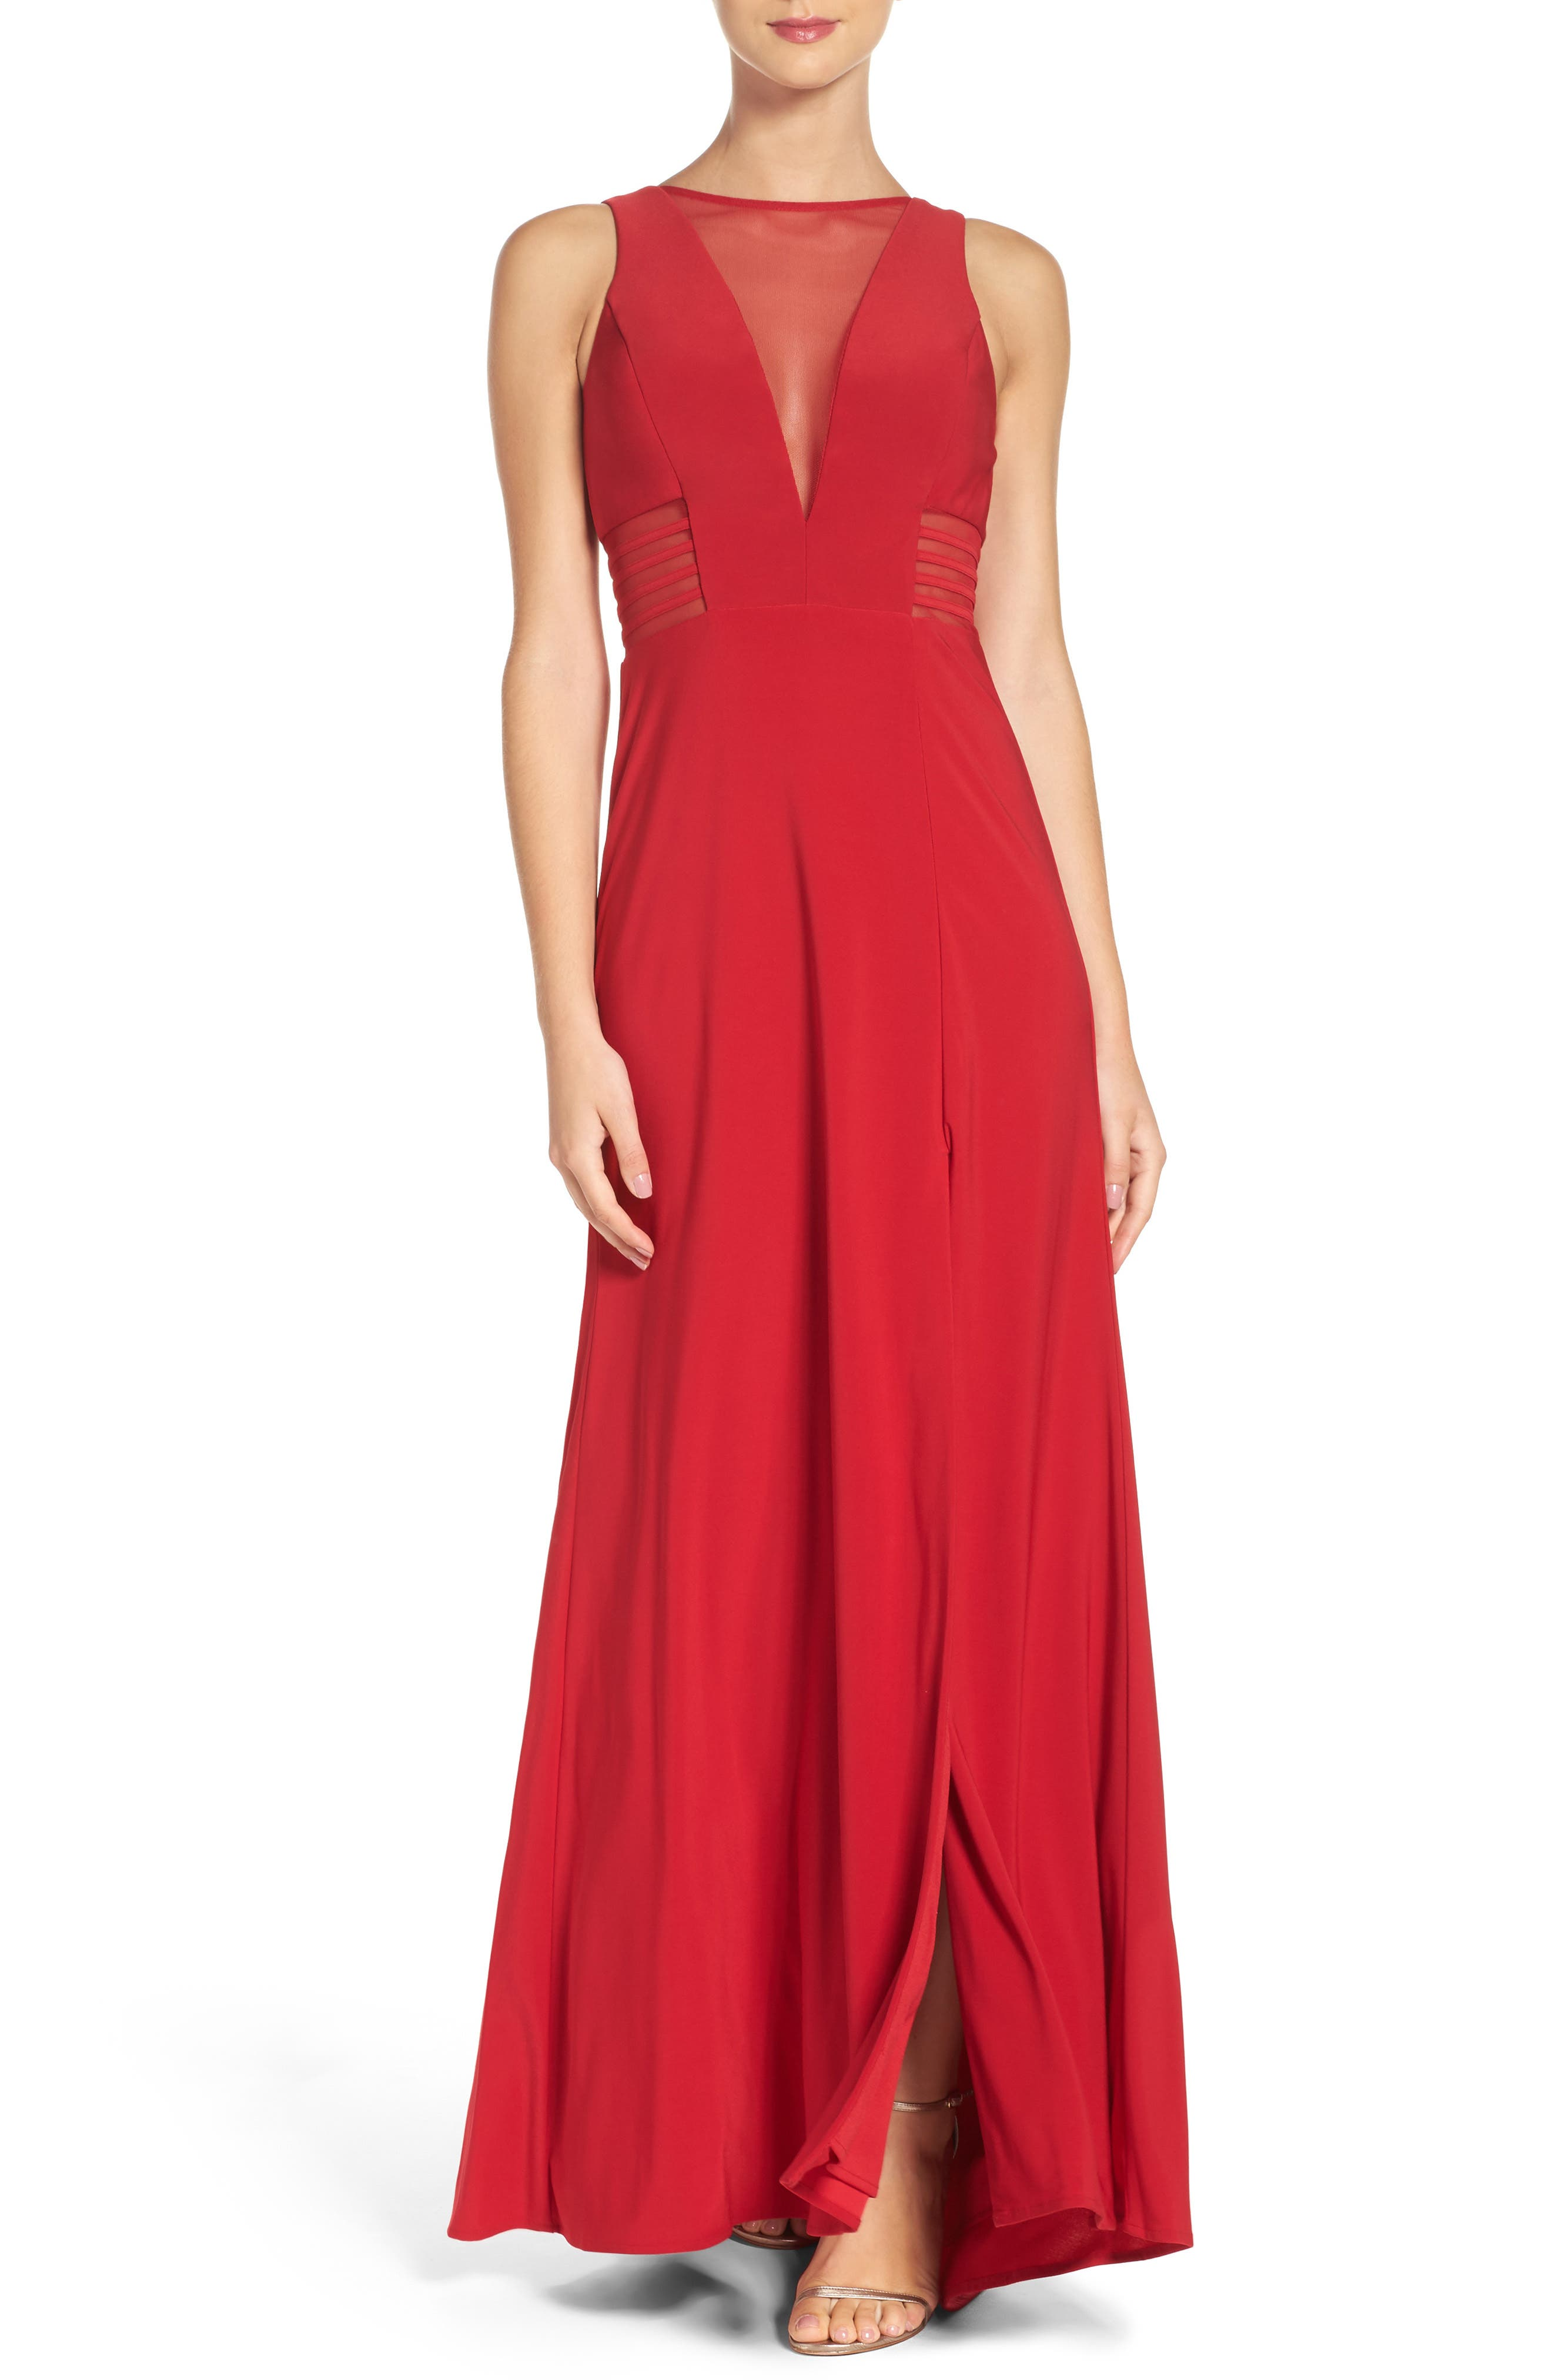 Morgan & Co. Illusion Gown, /6 - Red